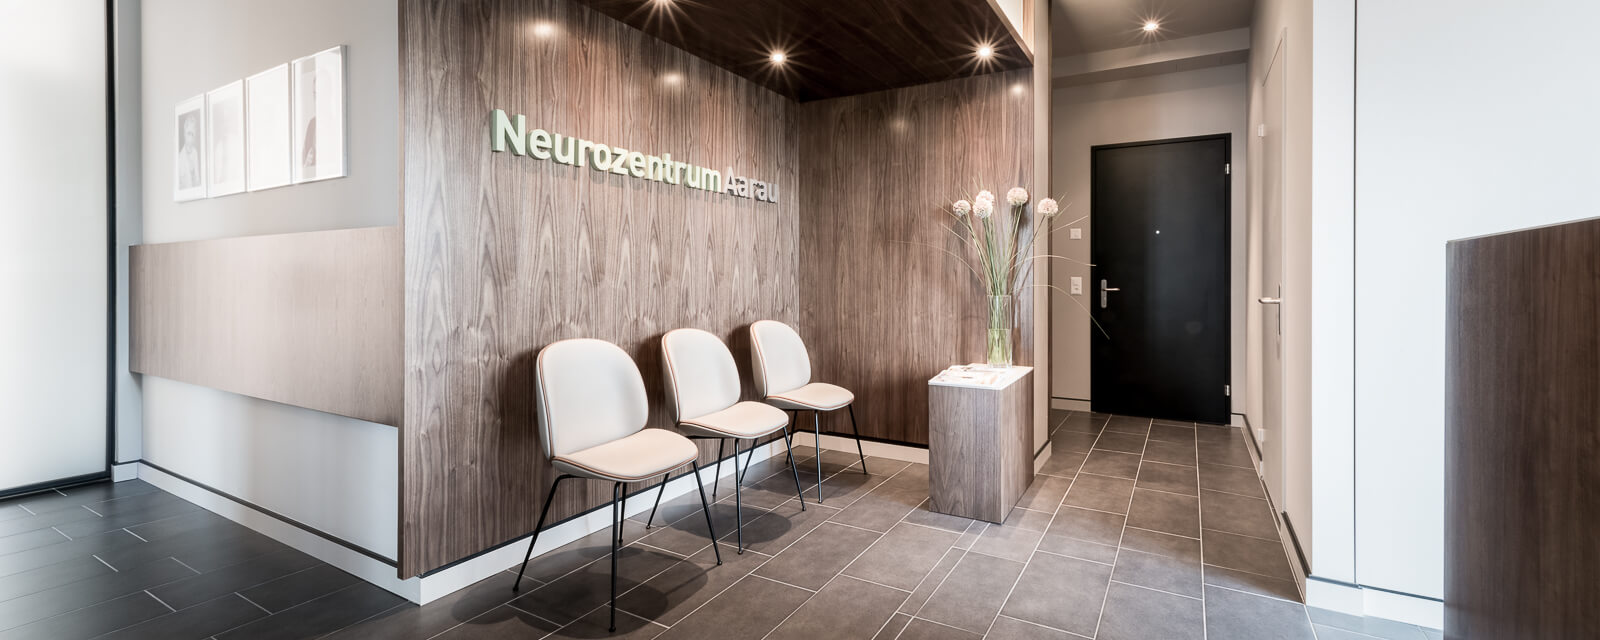 Neurozentrum Aarau Empfang Hirslanden Medical Center